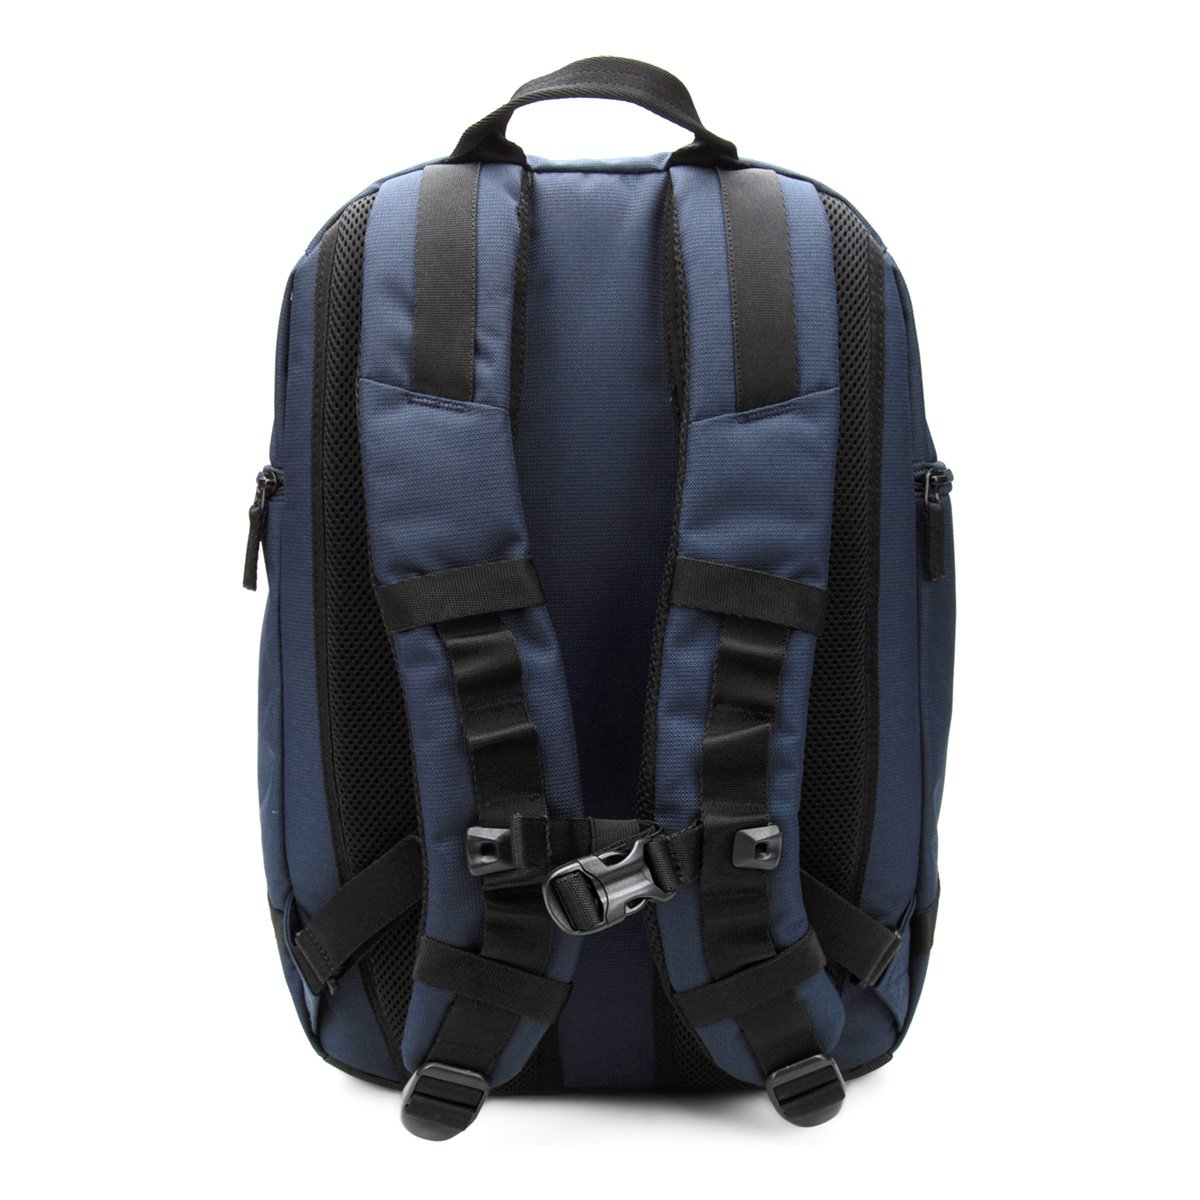 Mochila Oakley Mod Street Organizing Backpack - 3